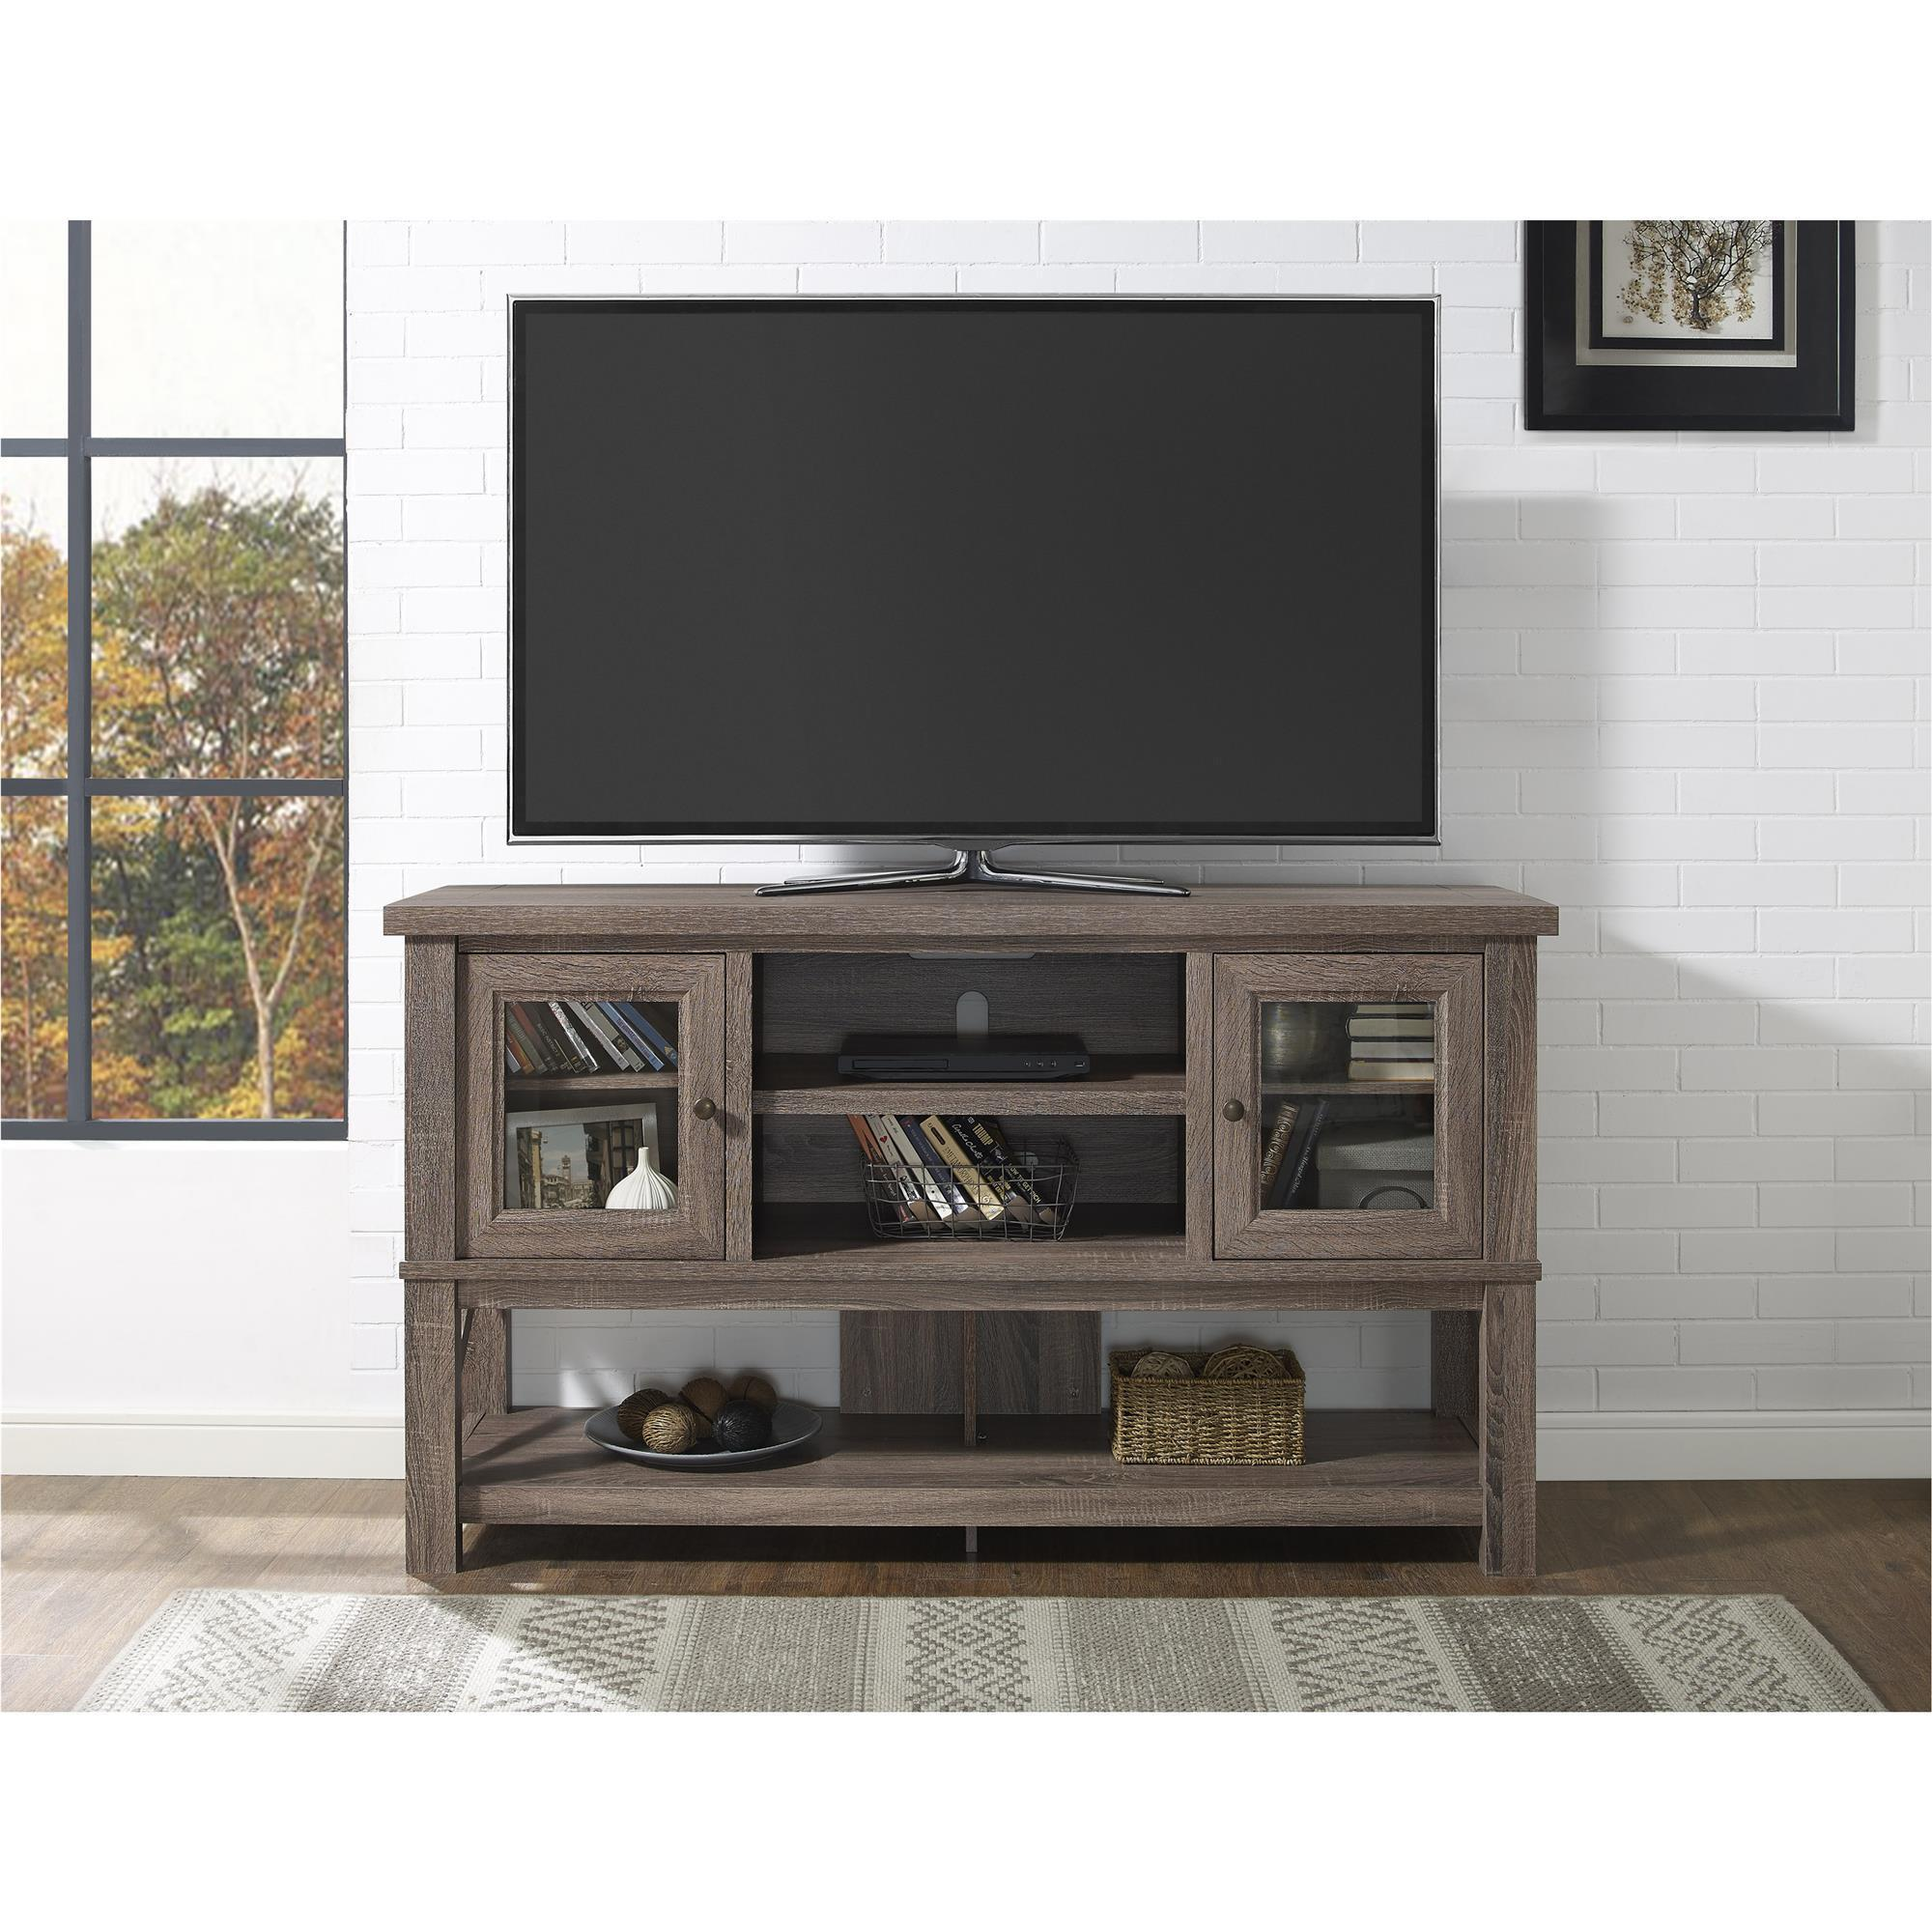 Shop Ameriwood Home Everett 70 Inch Sonoma Oak Tv Stand With Glass